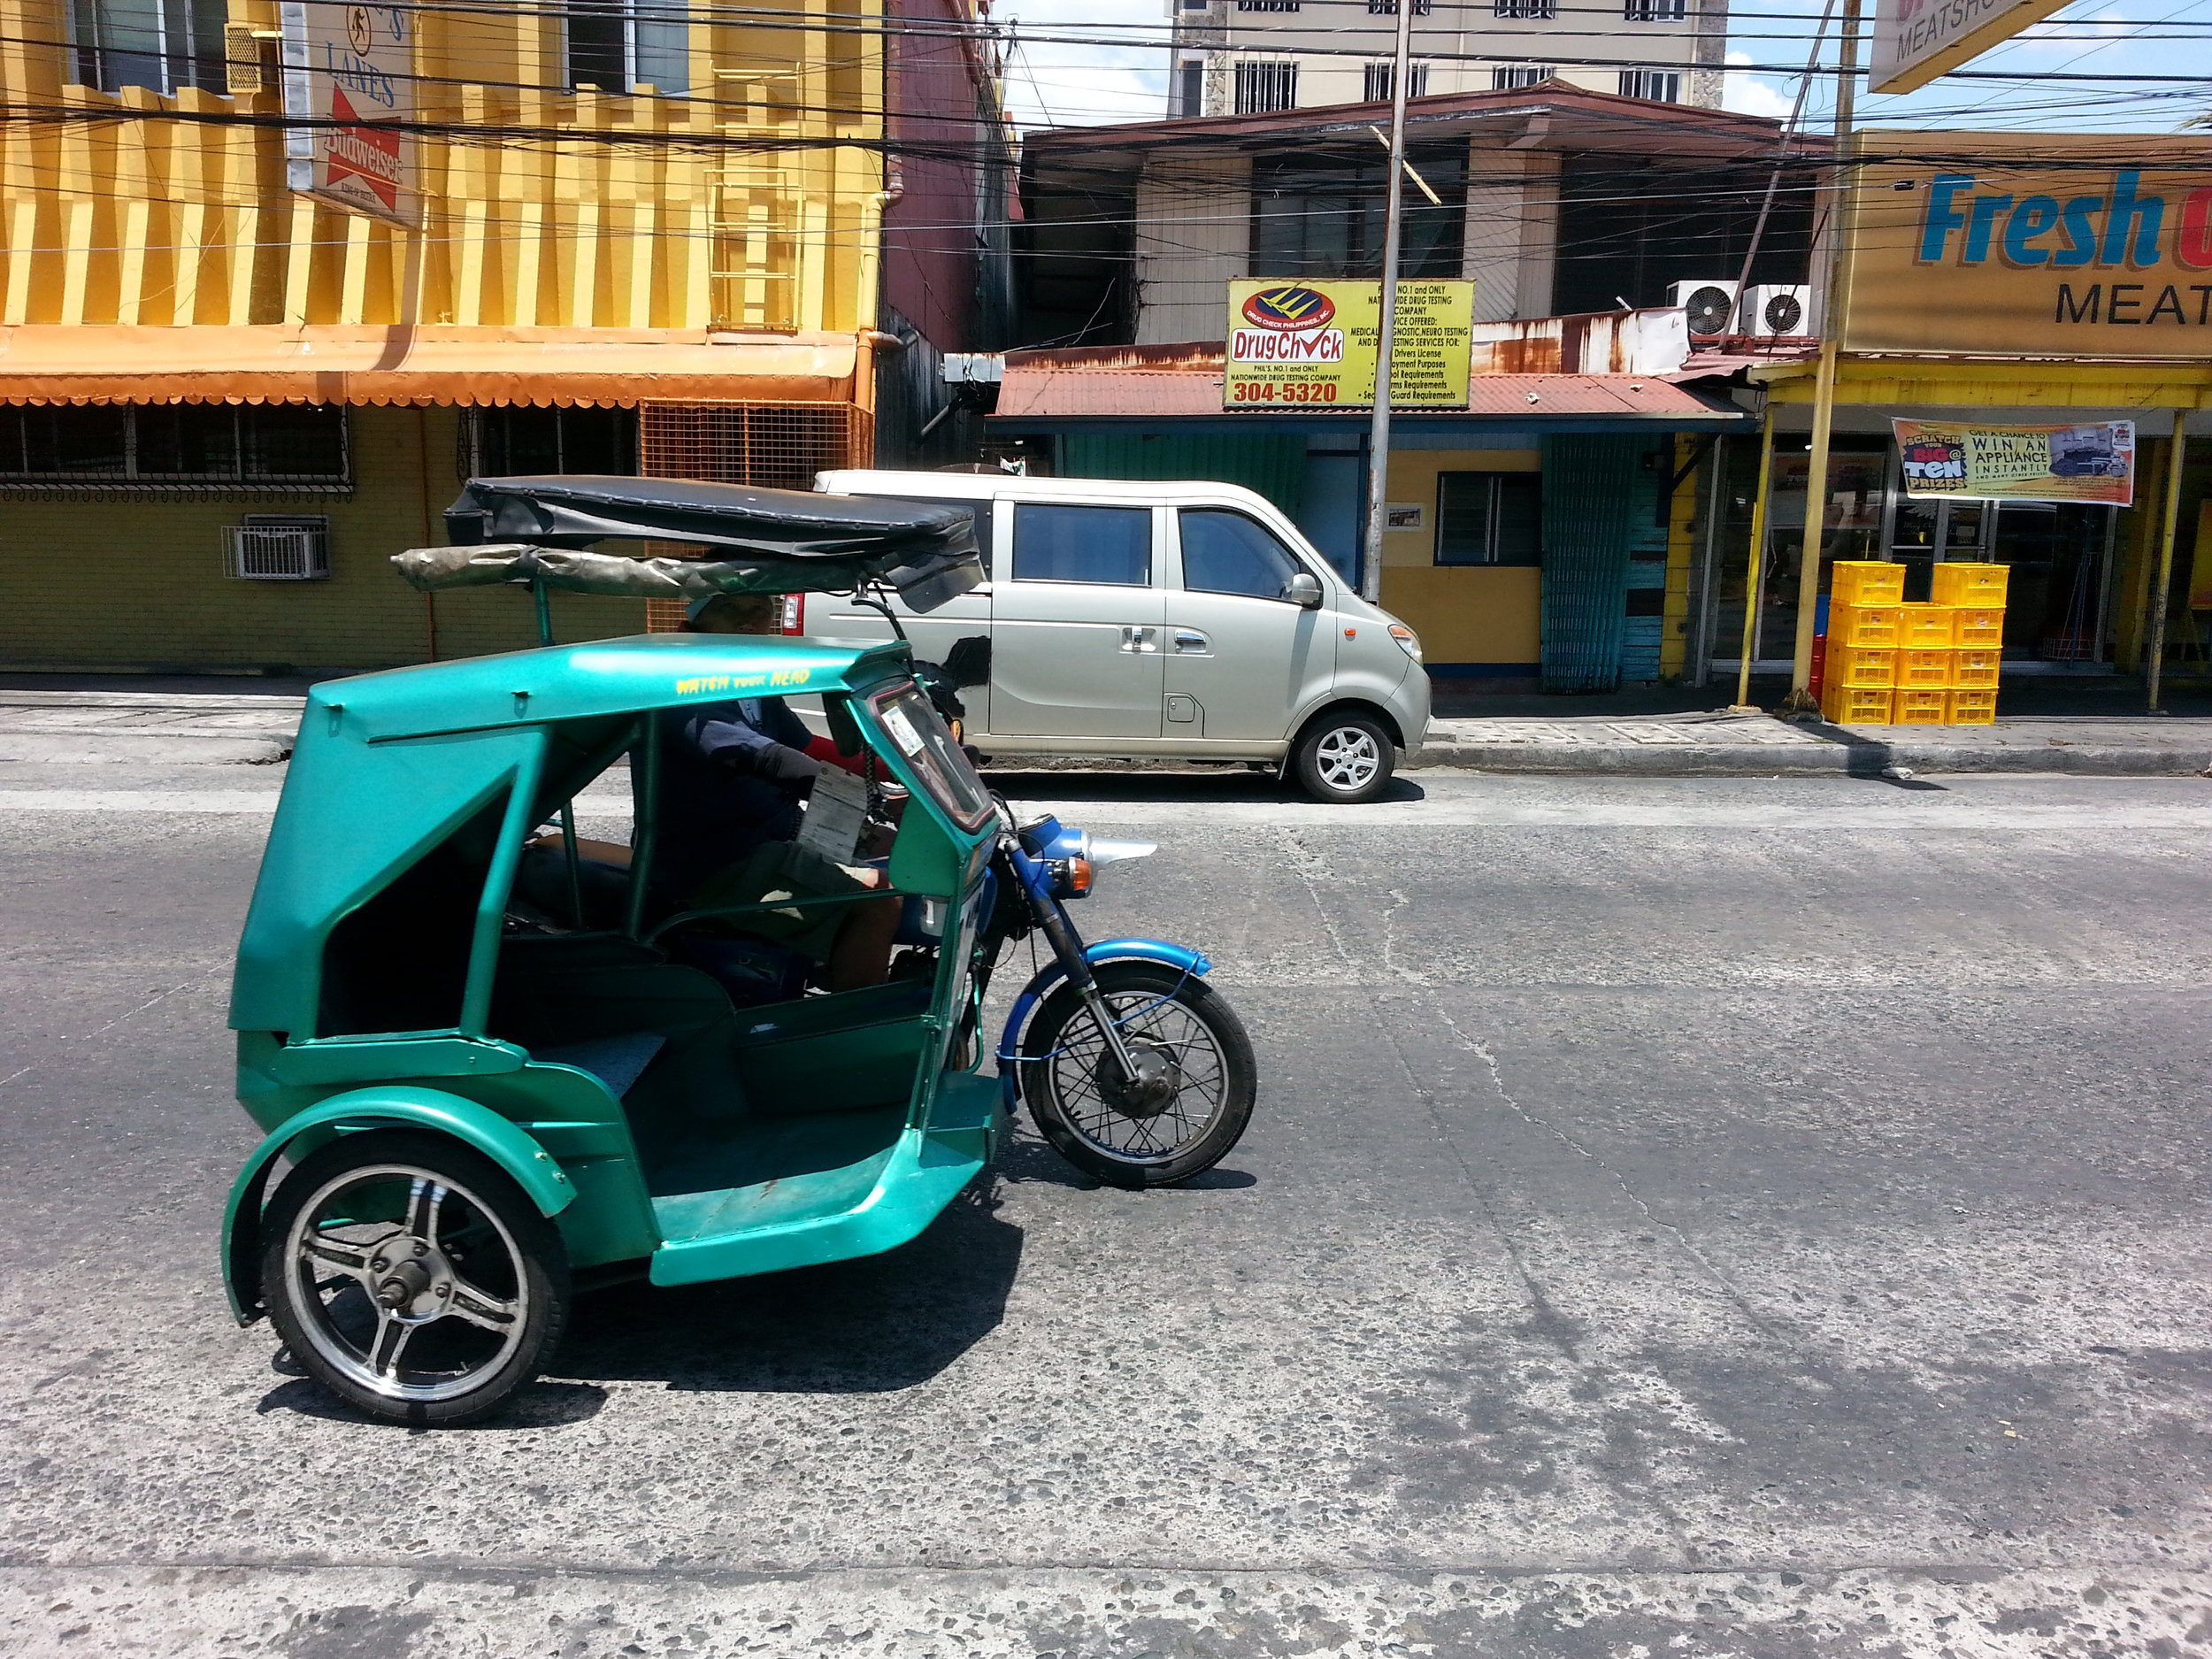 Don't forget to take a ride in the PI's much cheaper and more dangerous version of a taxicab! The Trike Bike!